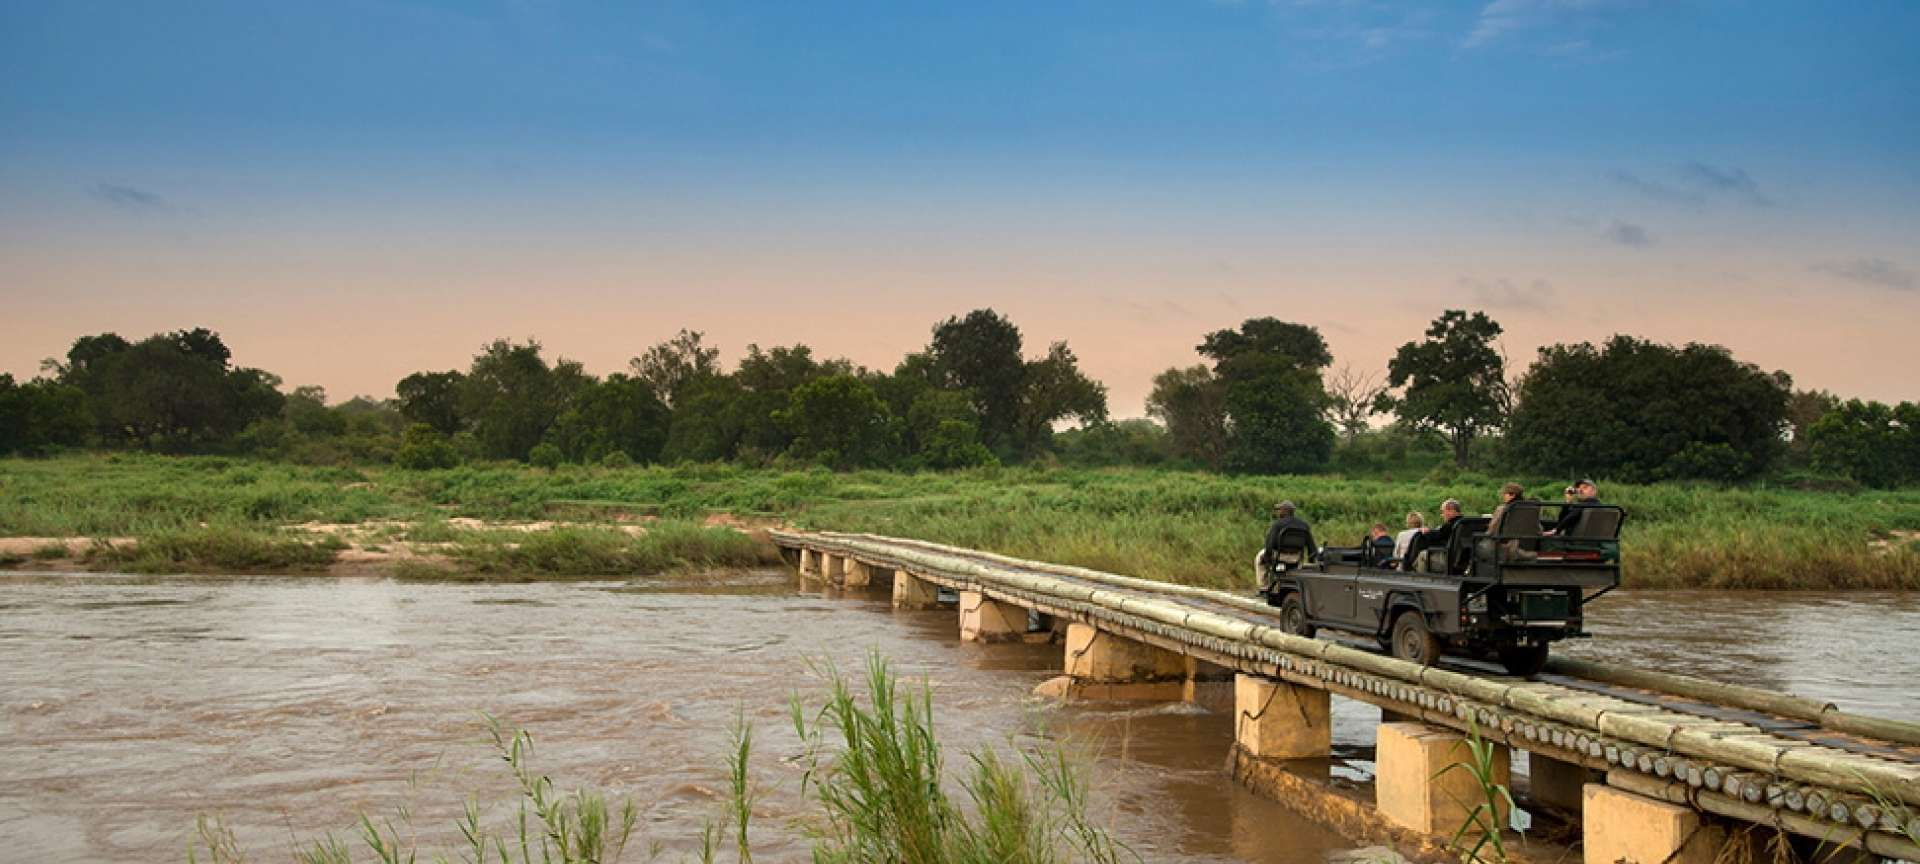 Kruger National Park (park and it's private concessions) - Africa Wildlife Safaris